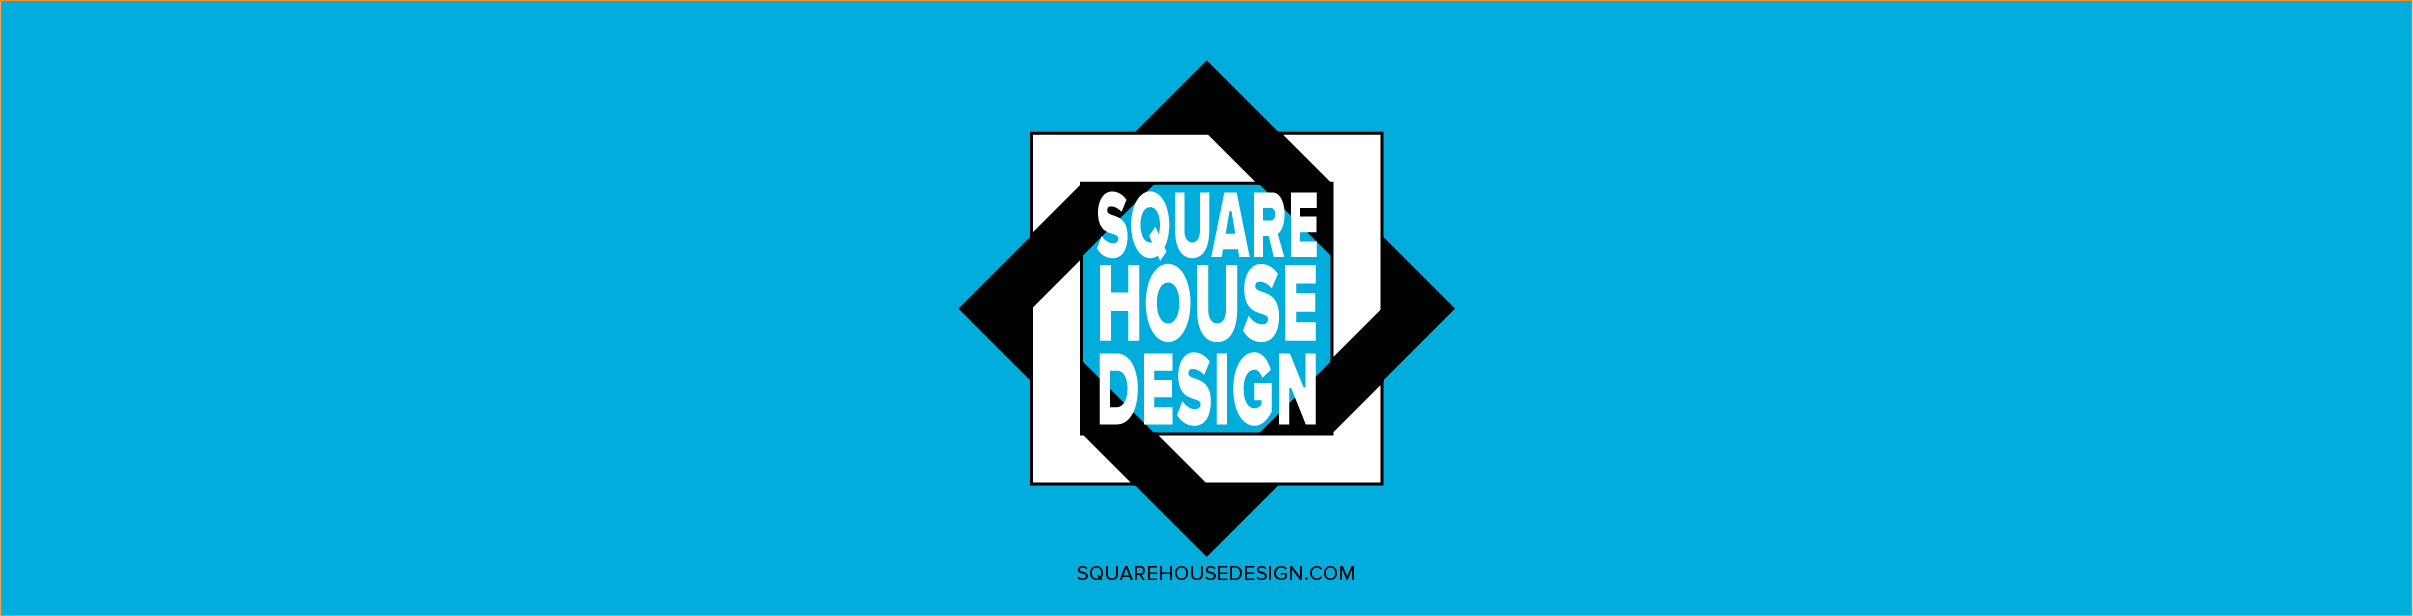 Square House Designs Header